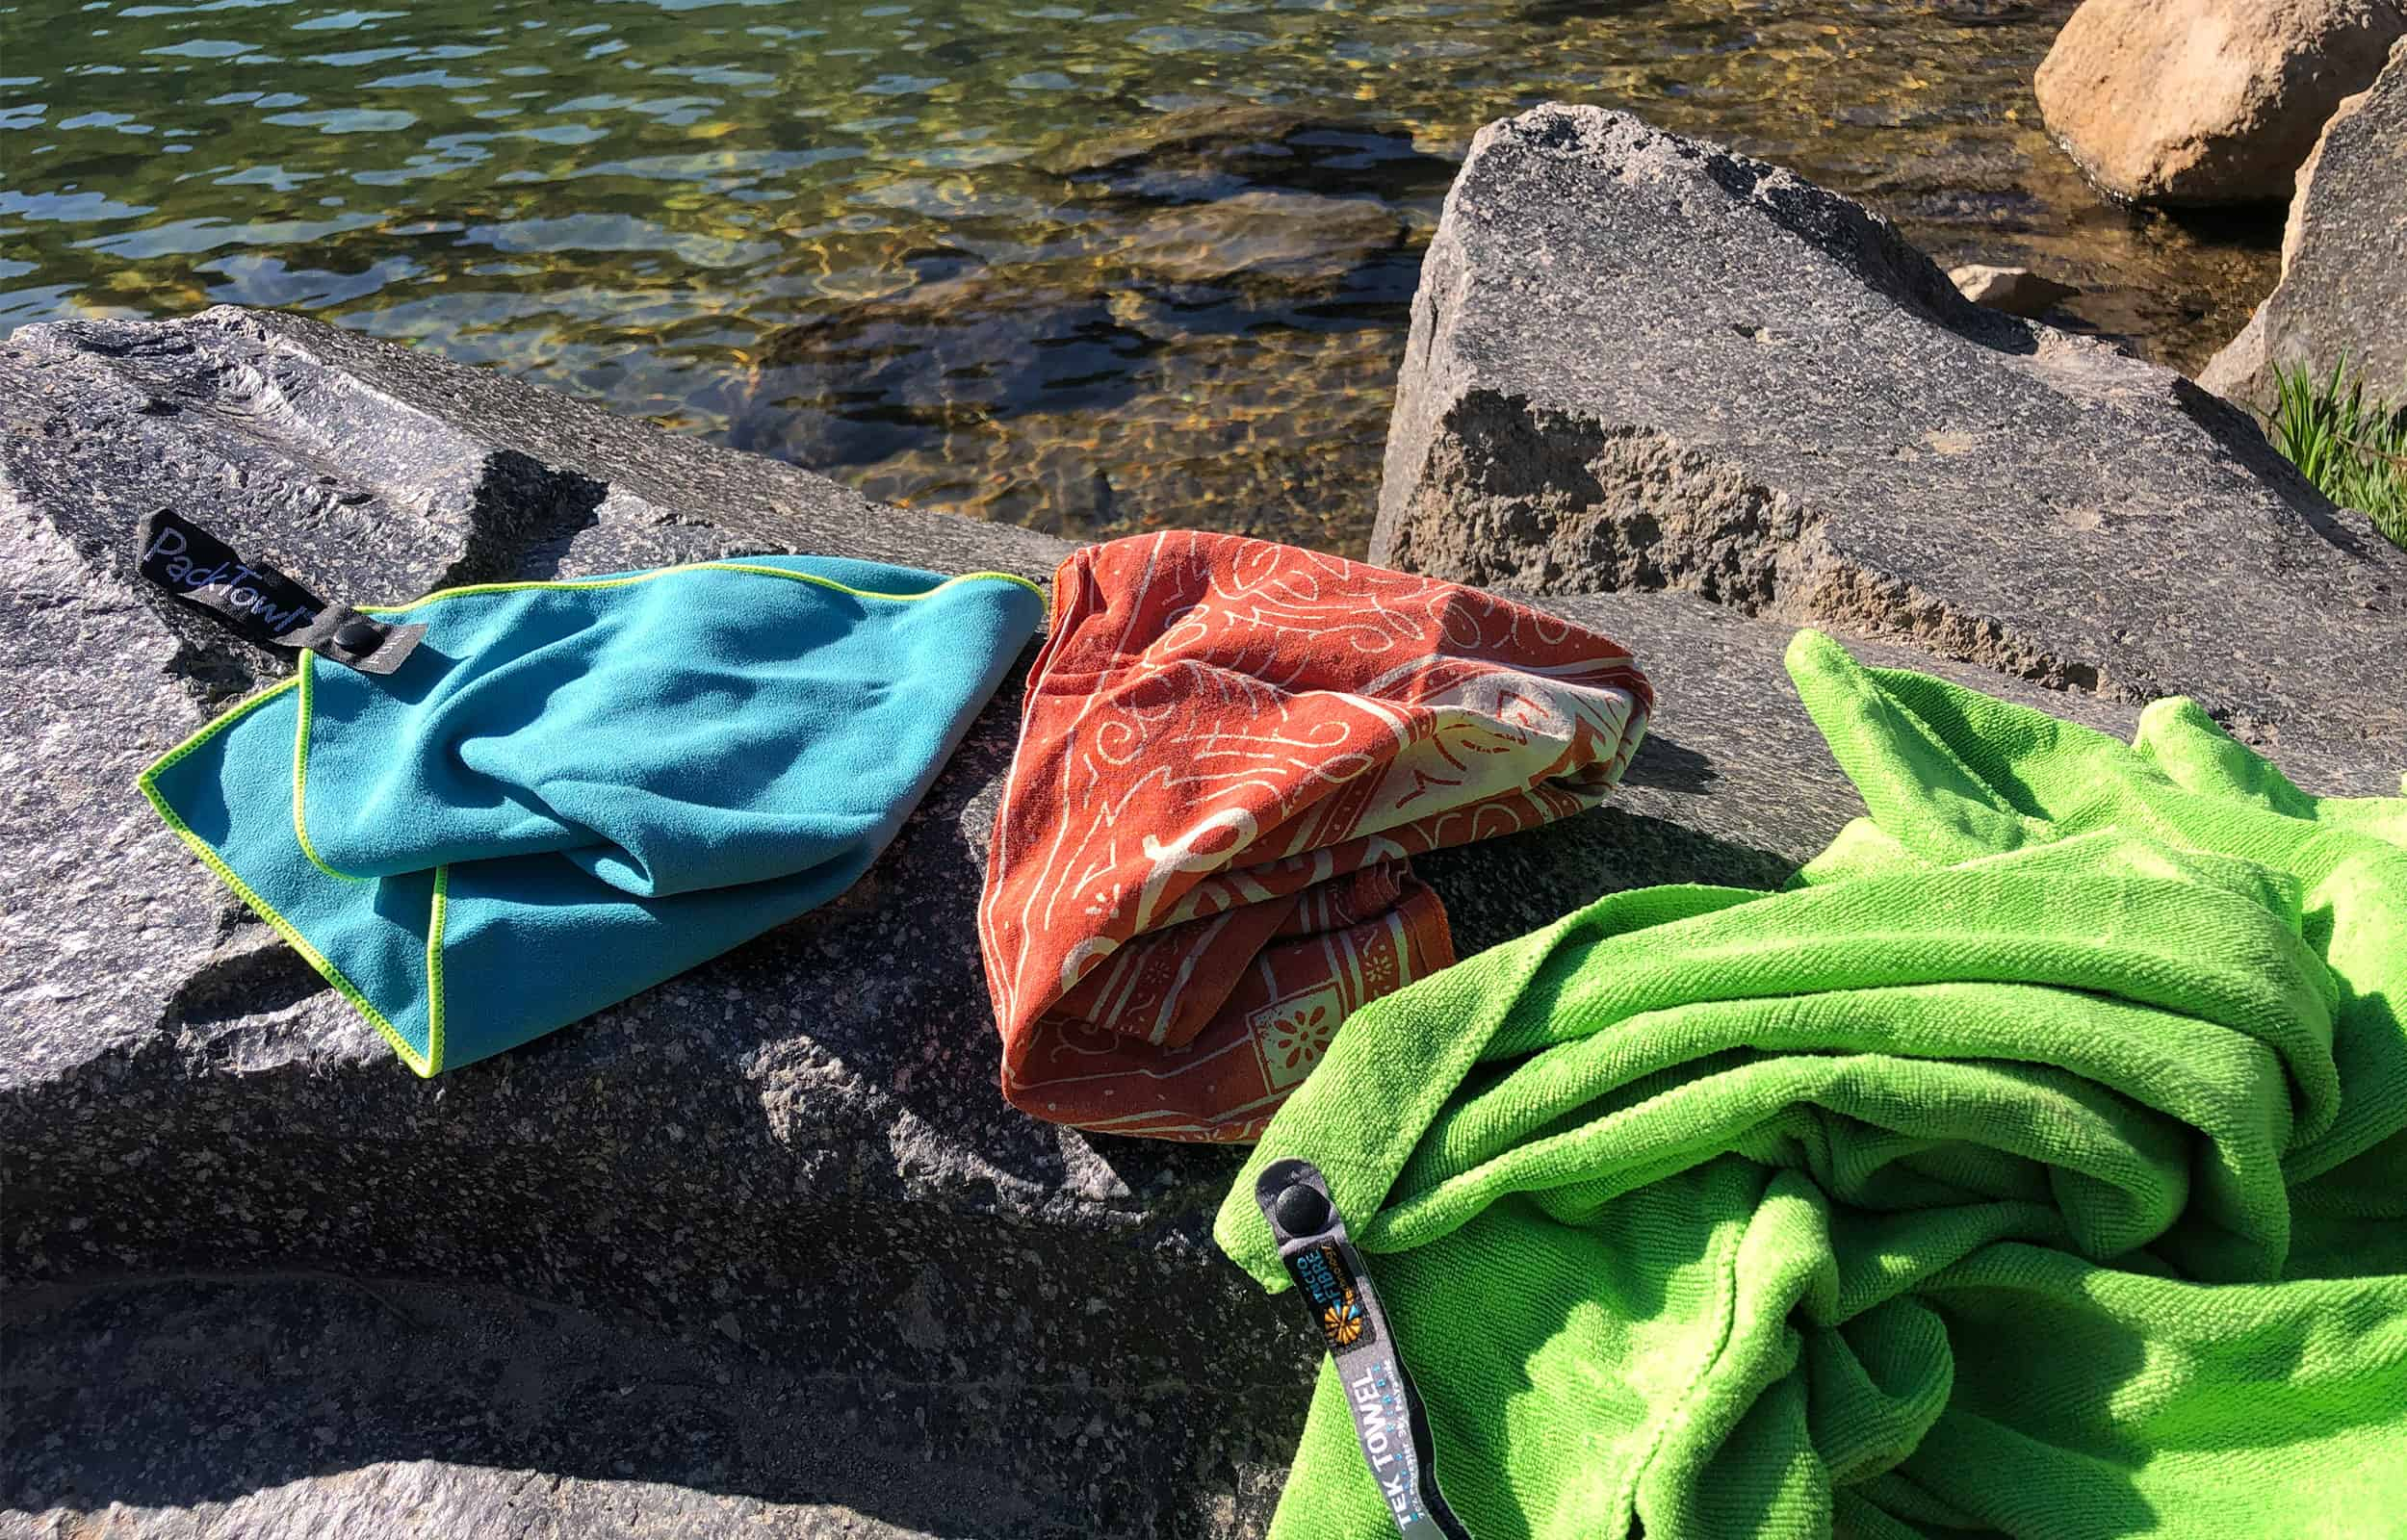 towels laying on a rock to stay clean while camping